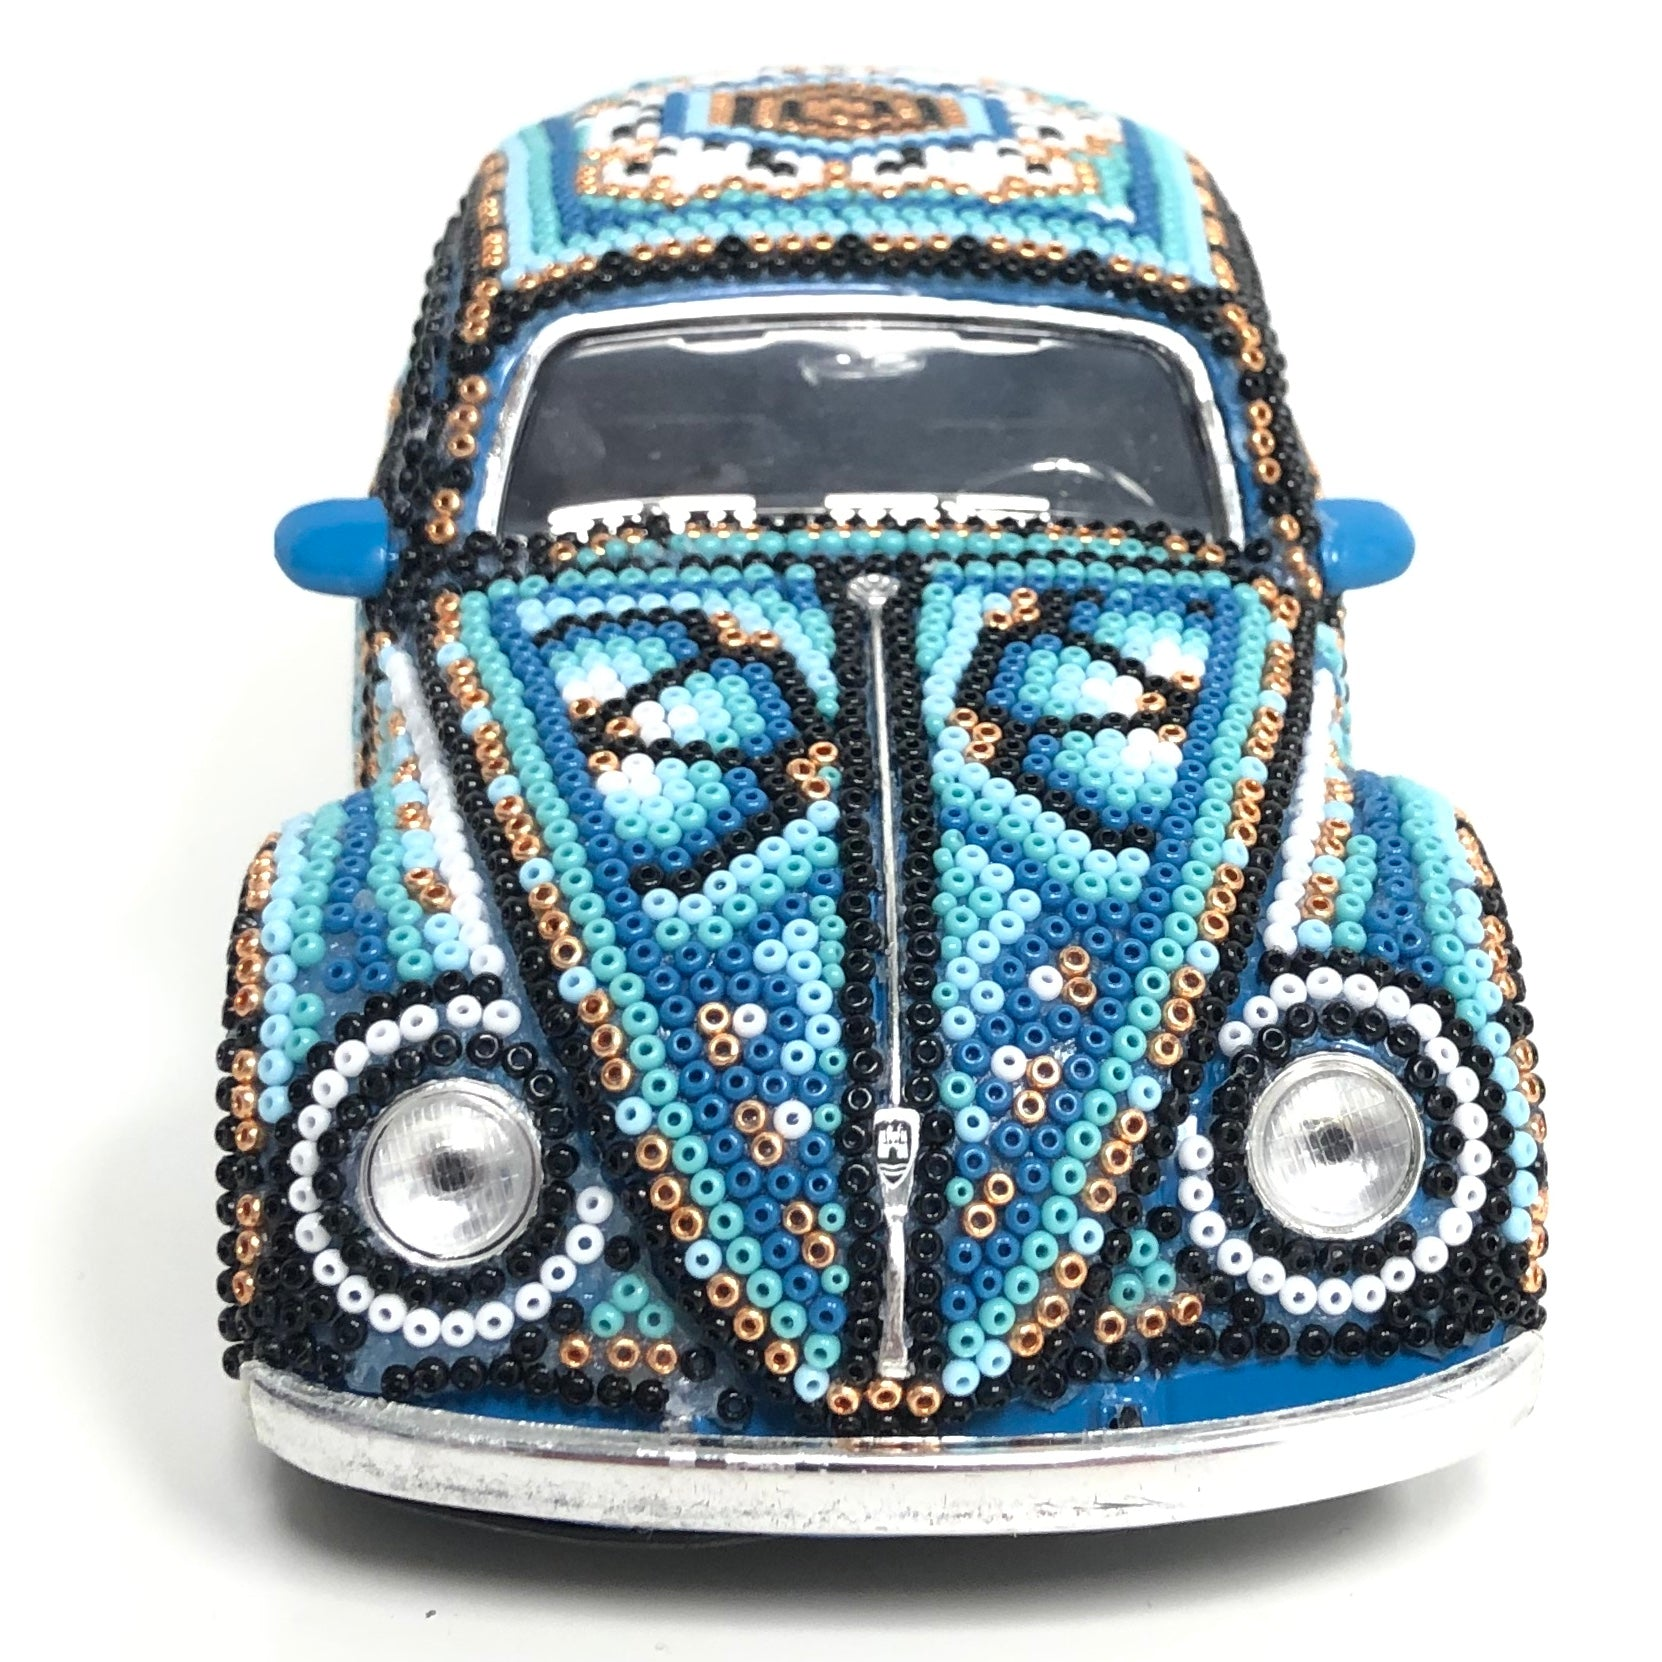 Huichol Art  - 1959 Volkswagen Beetle Covered In  Blue & Gold Huichol Art - Blue 1959 Volkswagen Beetle - Hikkuri Casa - Mr. Hikkuri